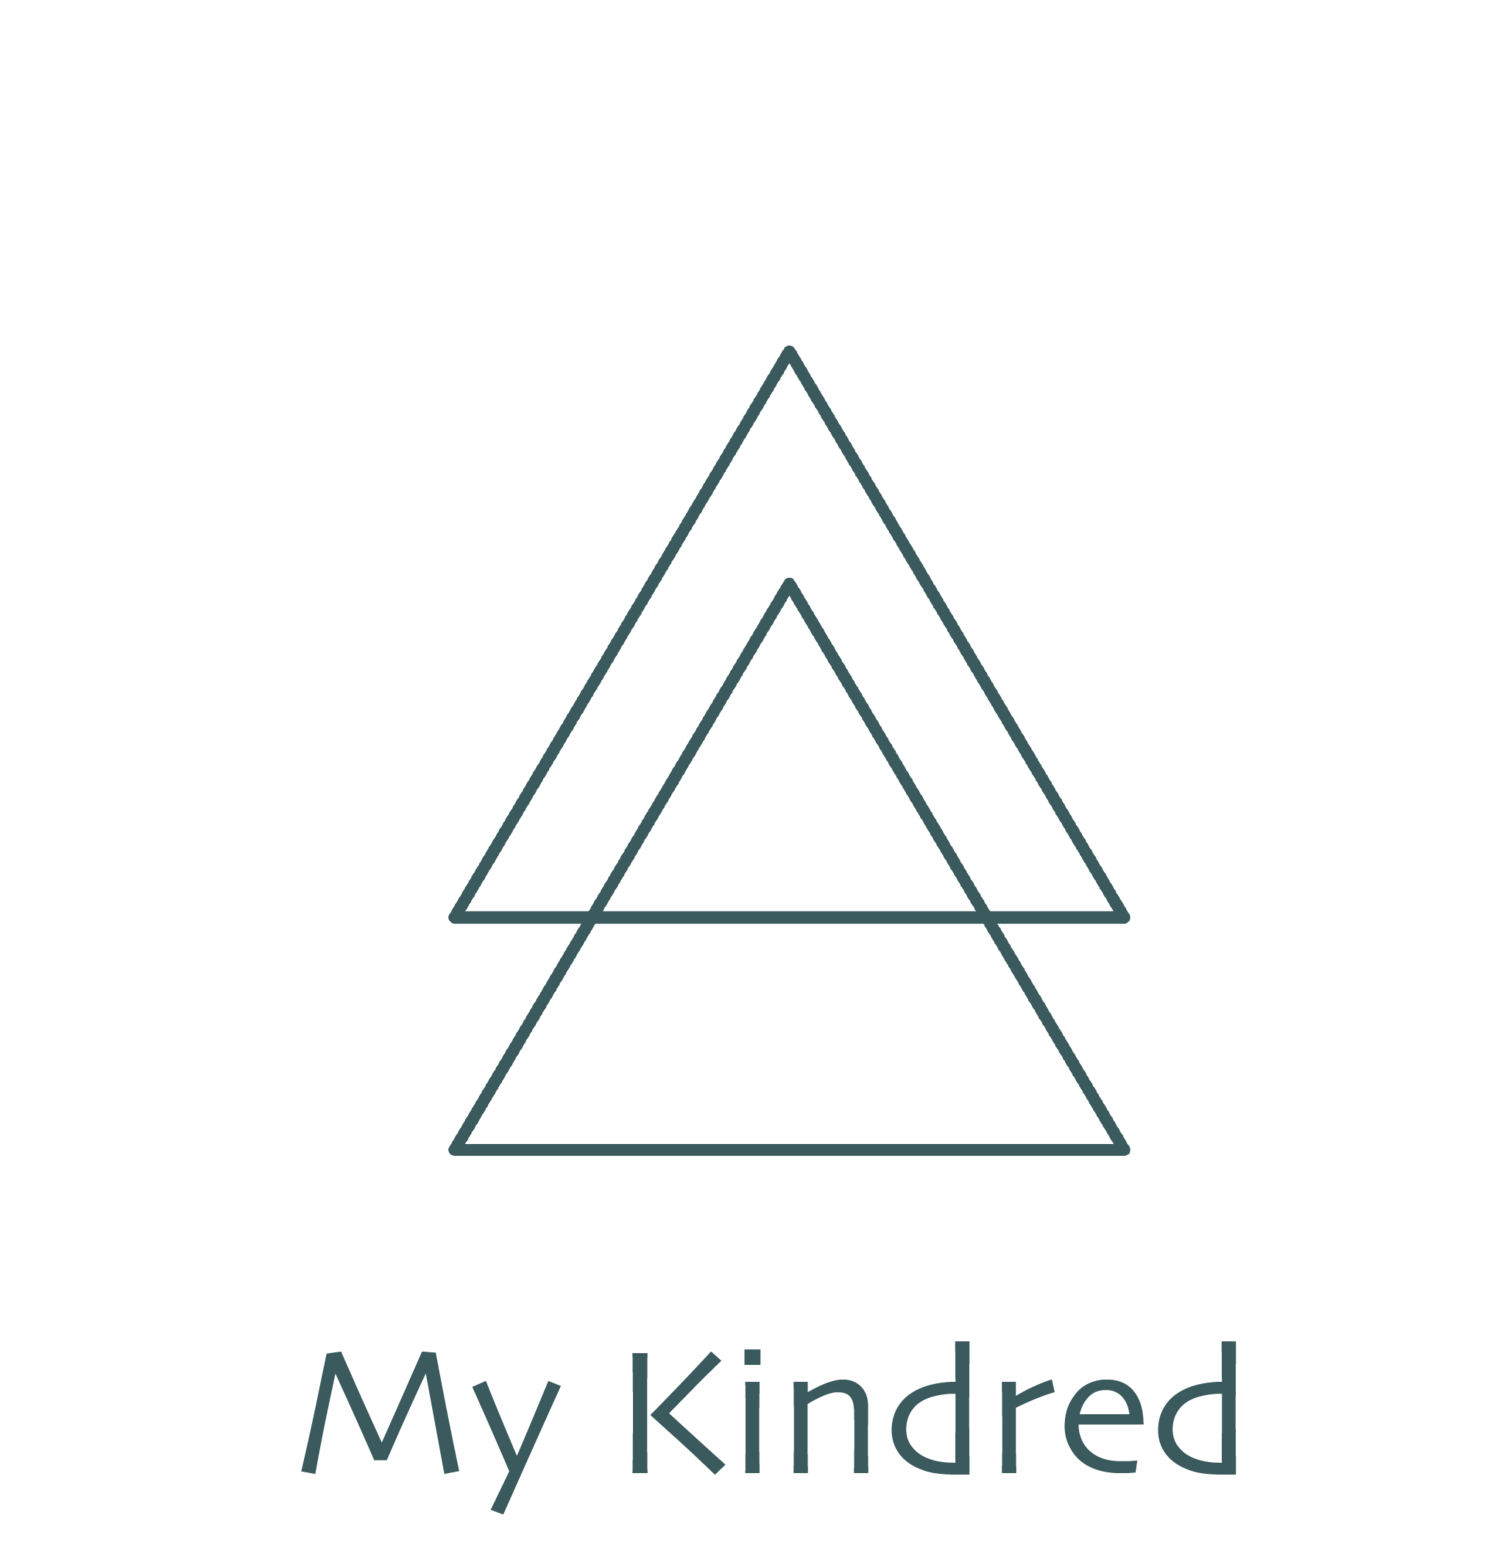 My Kindred